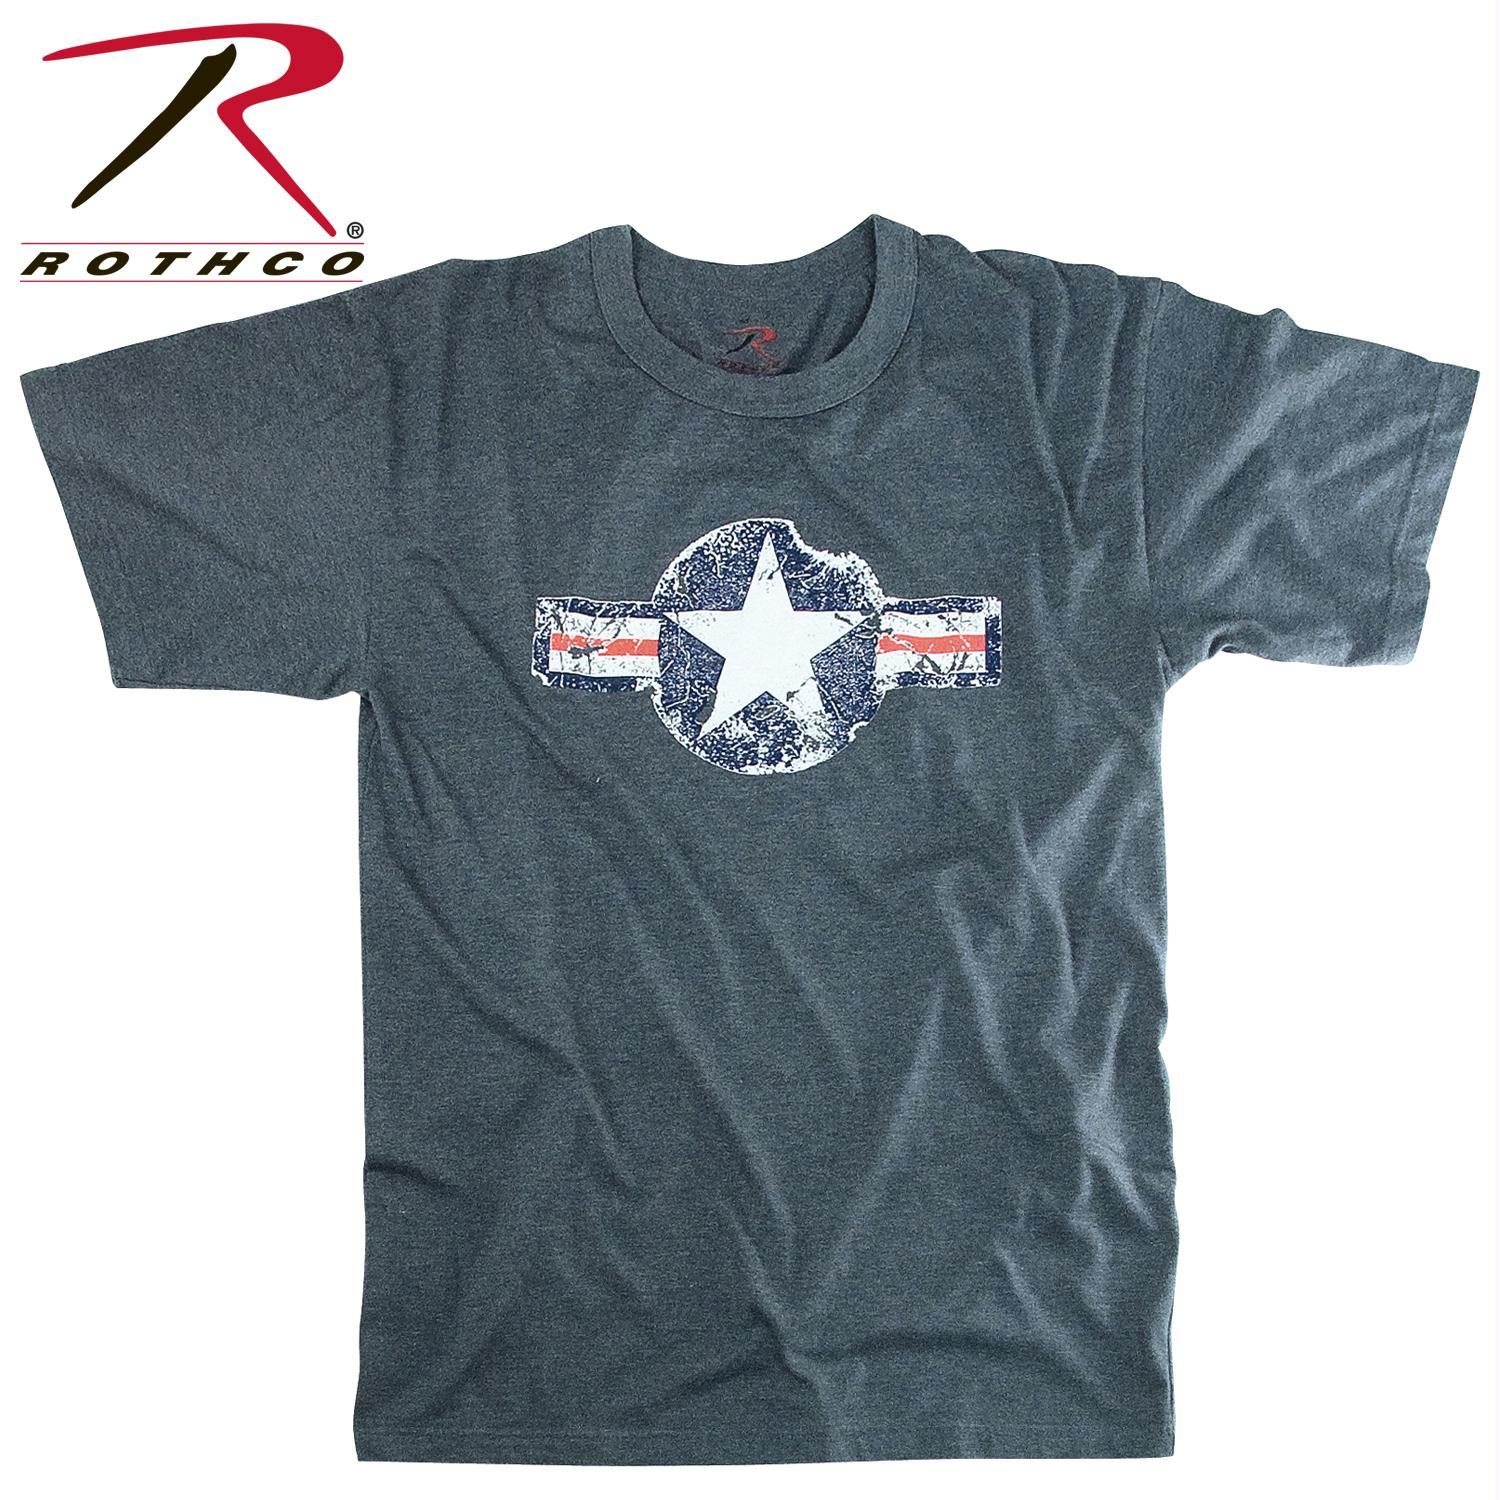 Rothco Vintage Army Air Corps T-Shirt - Blue / 2XL